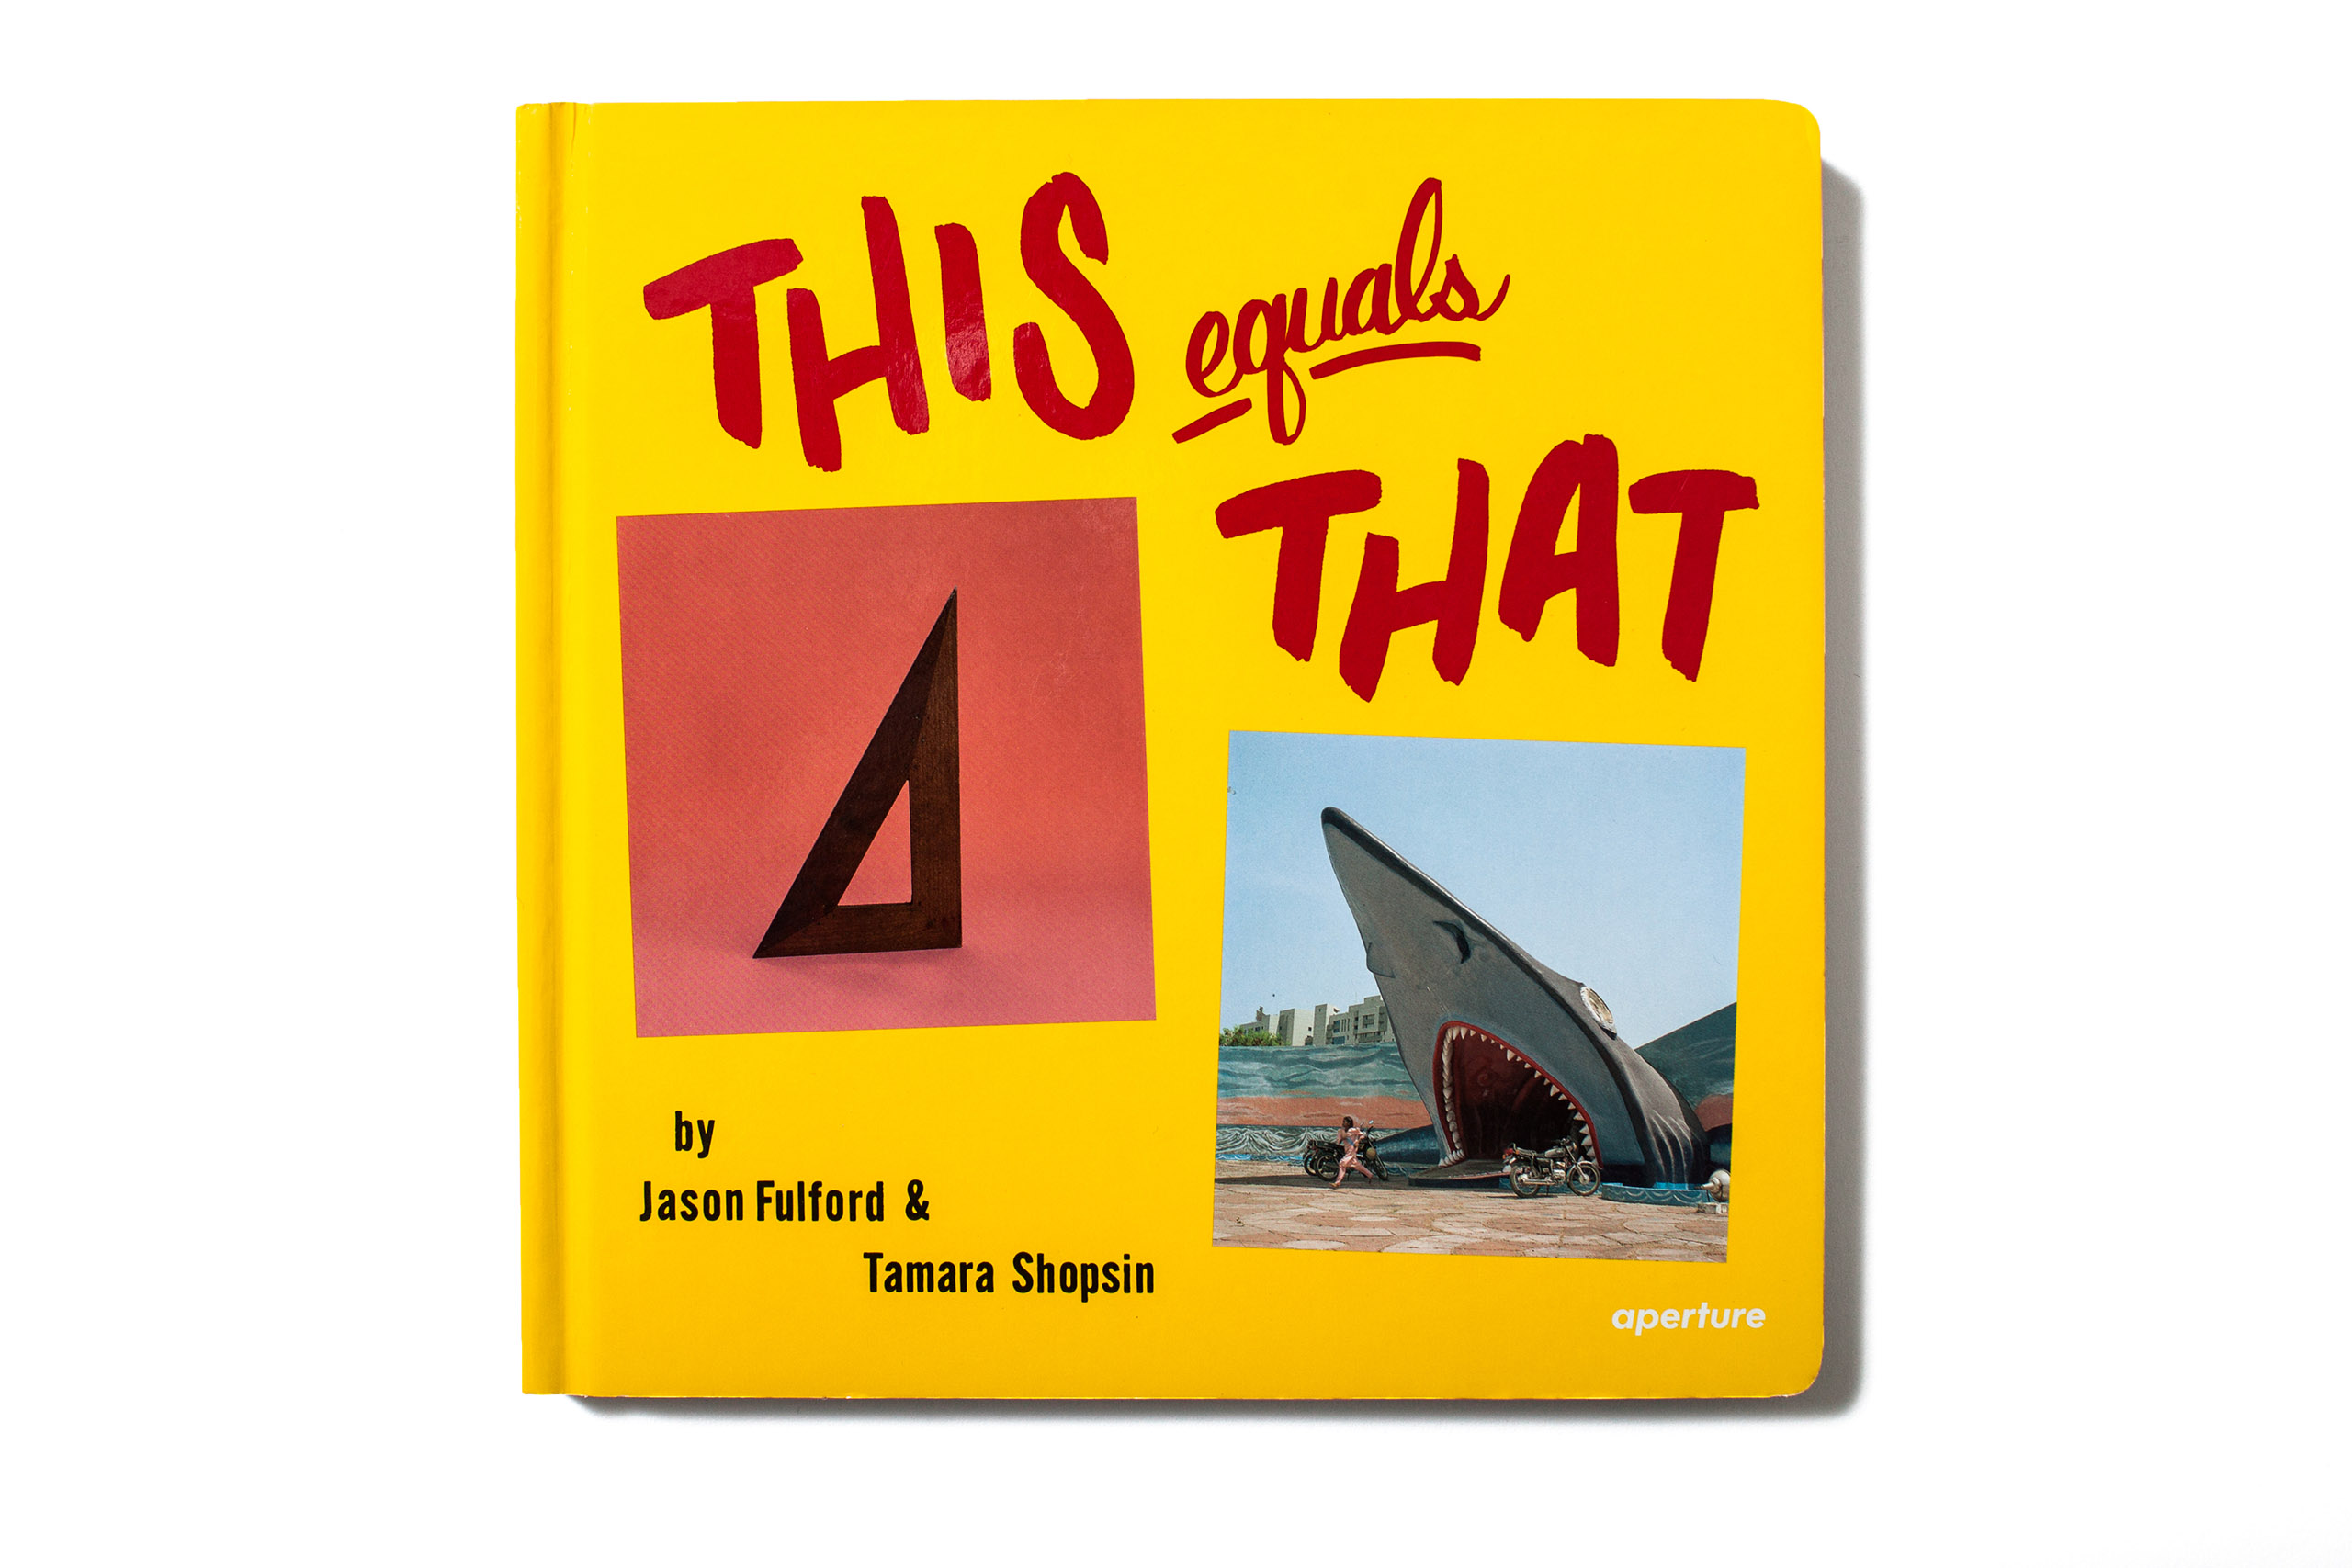 This Equals That                                by Jason Fulford and Tamara Shopsin, published by                               Aperture, selected by Aaron Schuman, photographer, writer, curator, and the editor of SeeSaw  Magazine